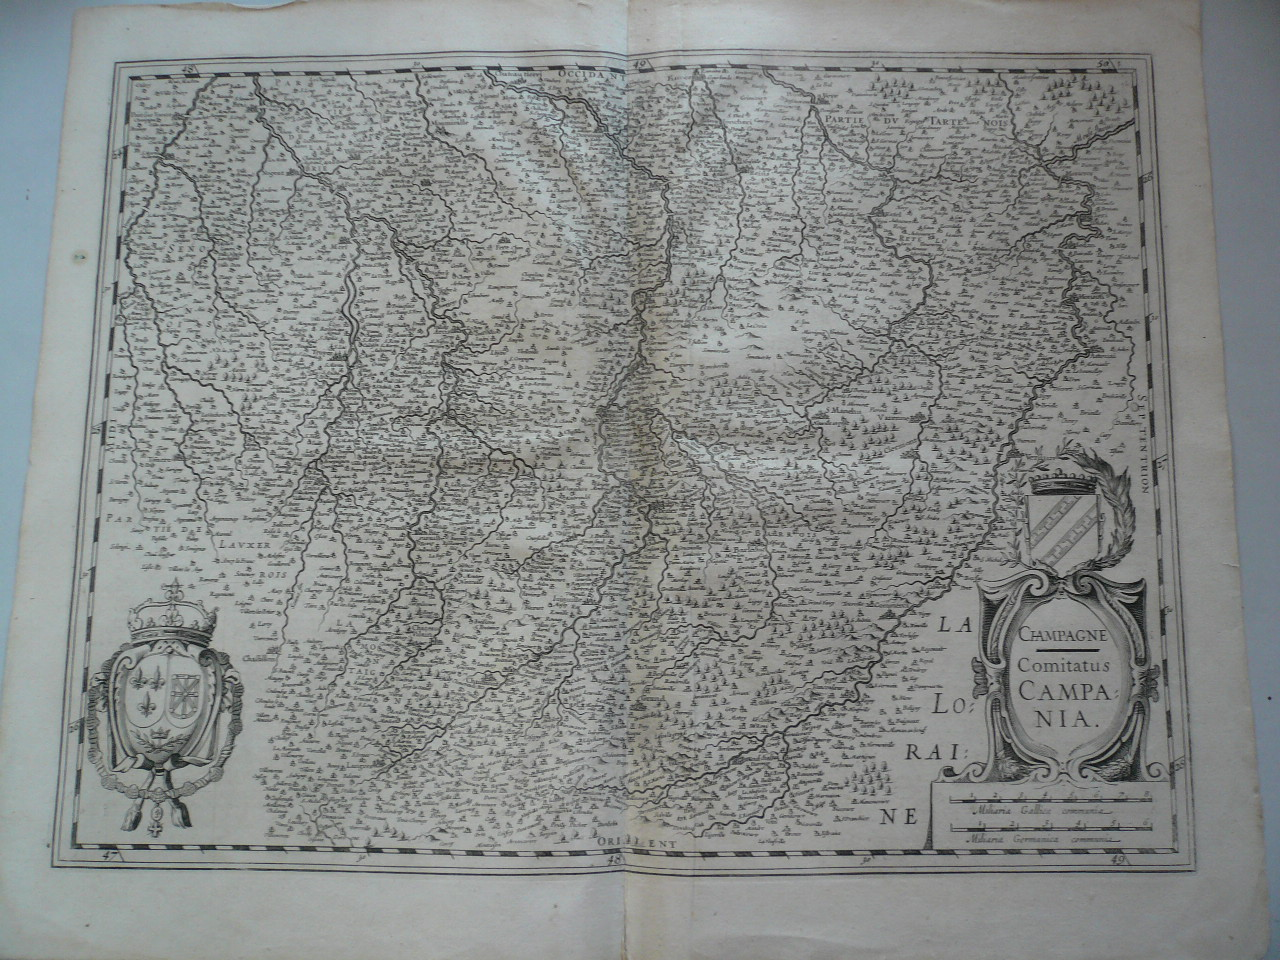 CHAMPAGNE Comitatus CAMPANIA Old Map Champagne France Janssonius